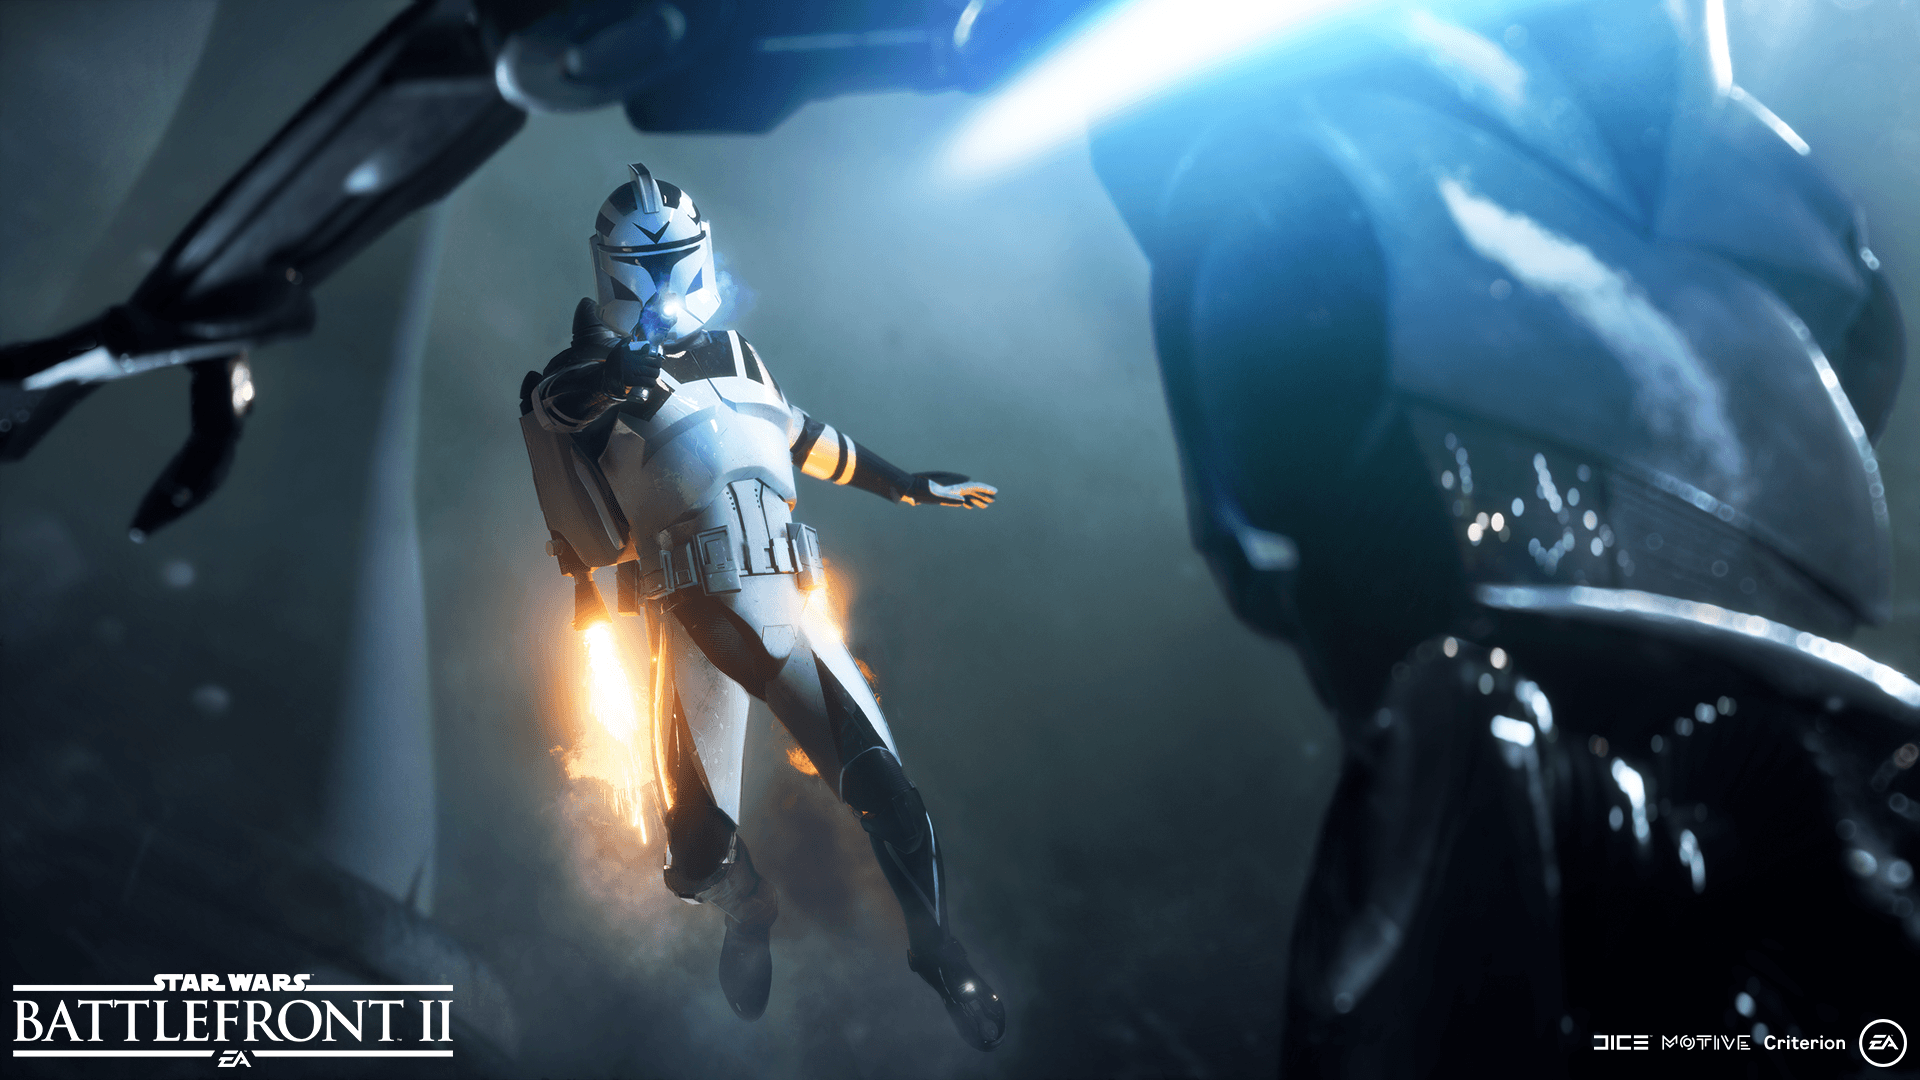 Star Wars Battlefront II Wallpapers - Wallpaper Cave